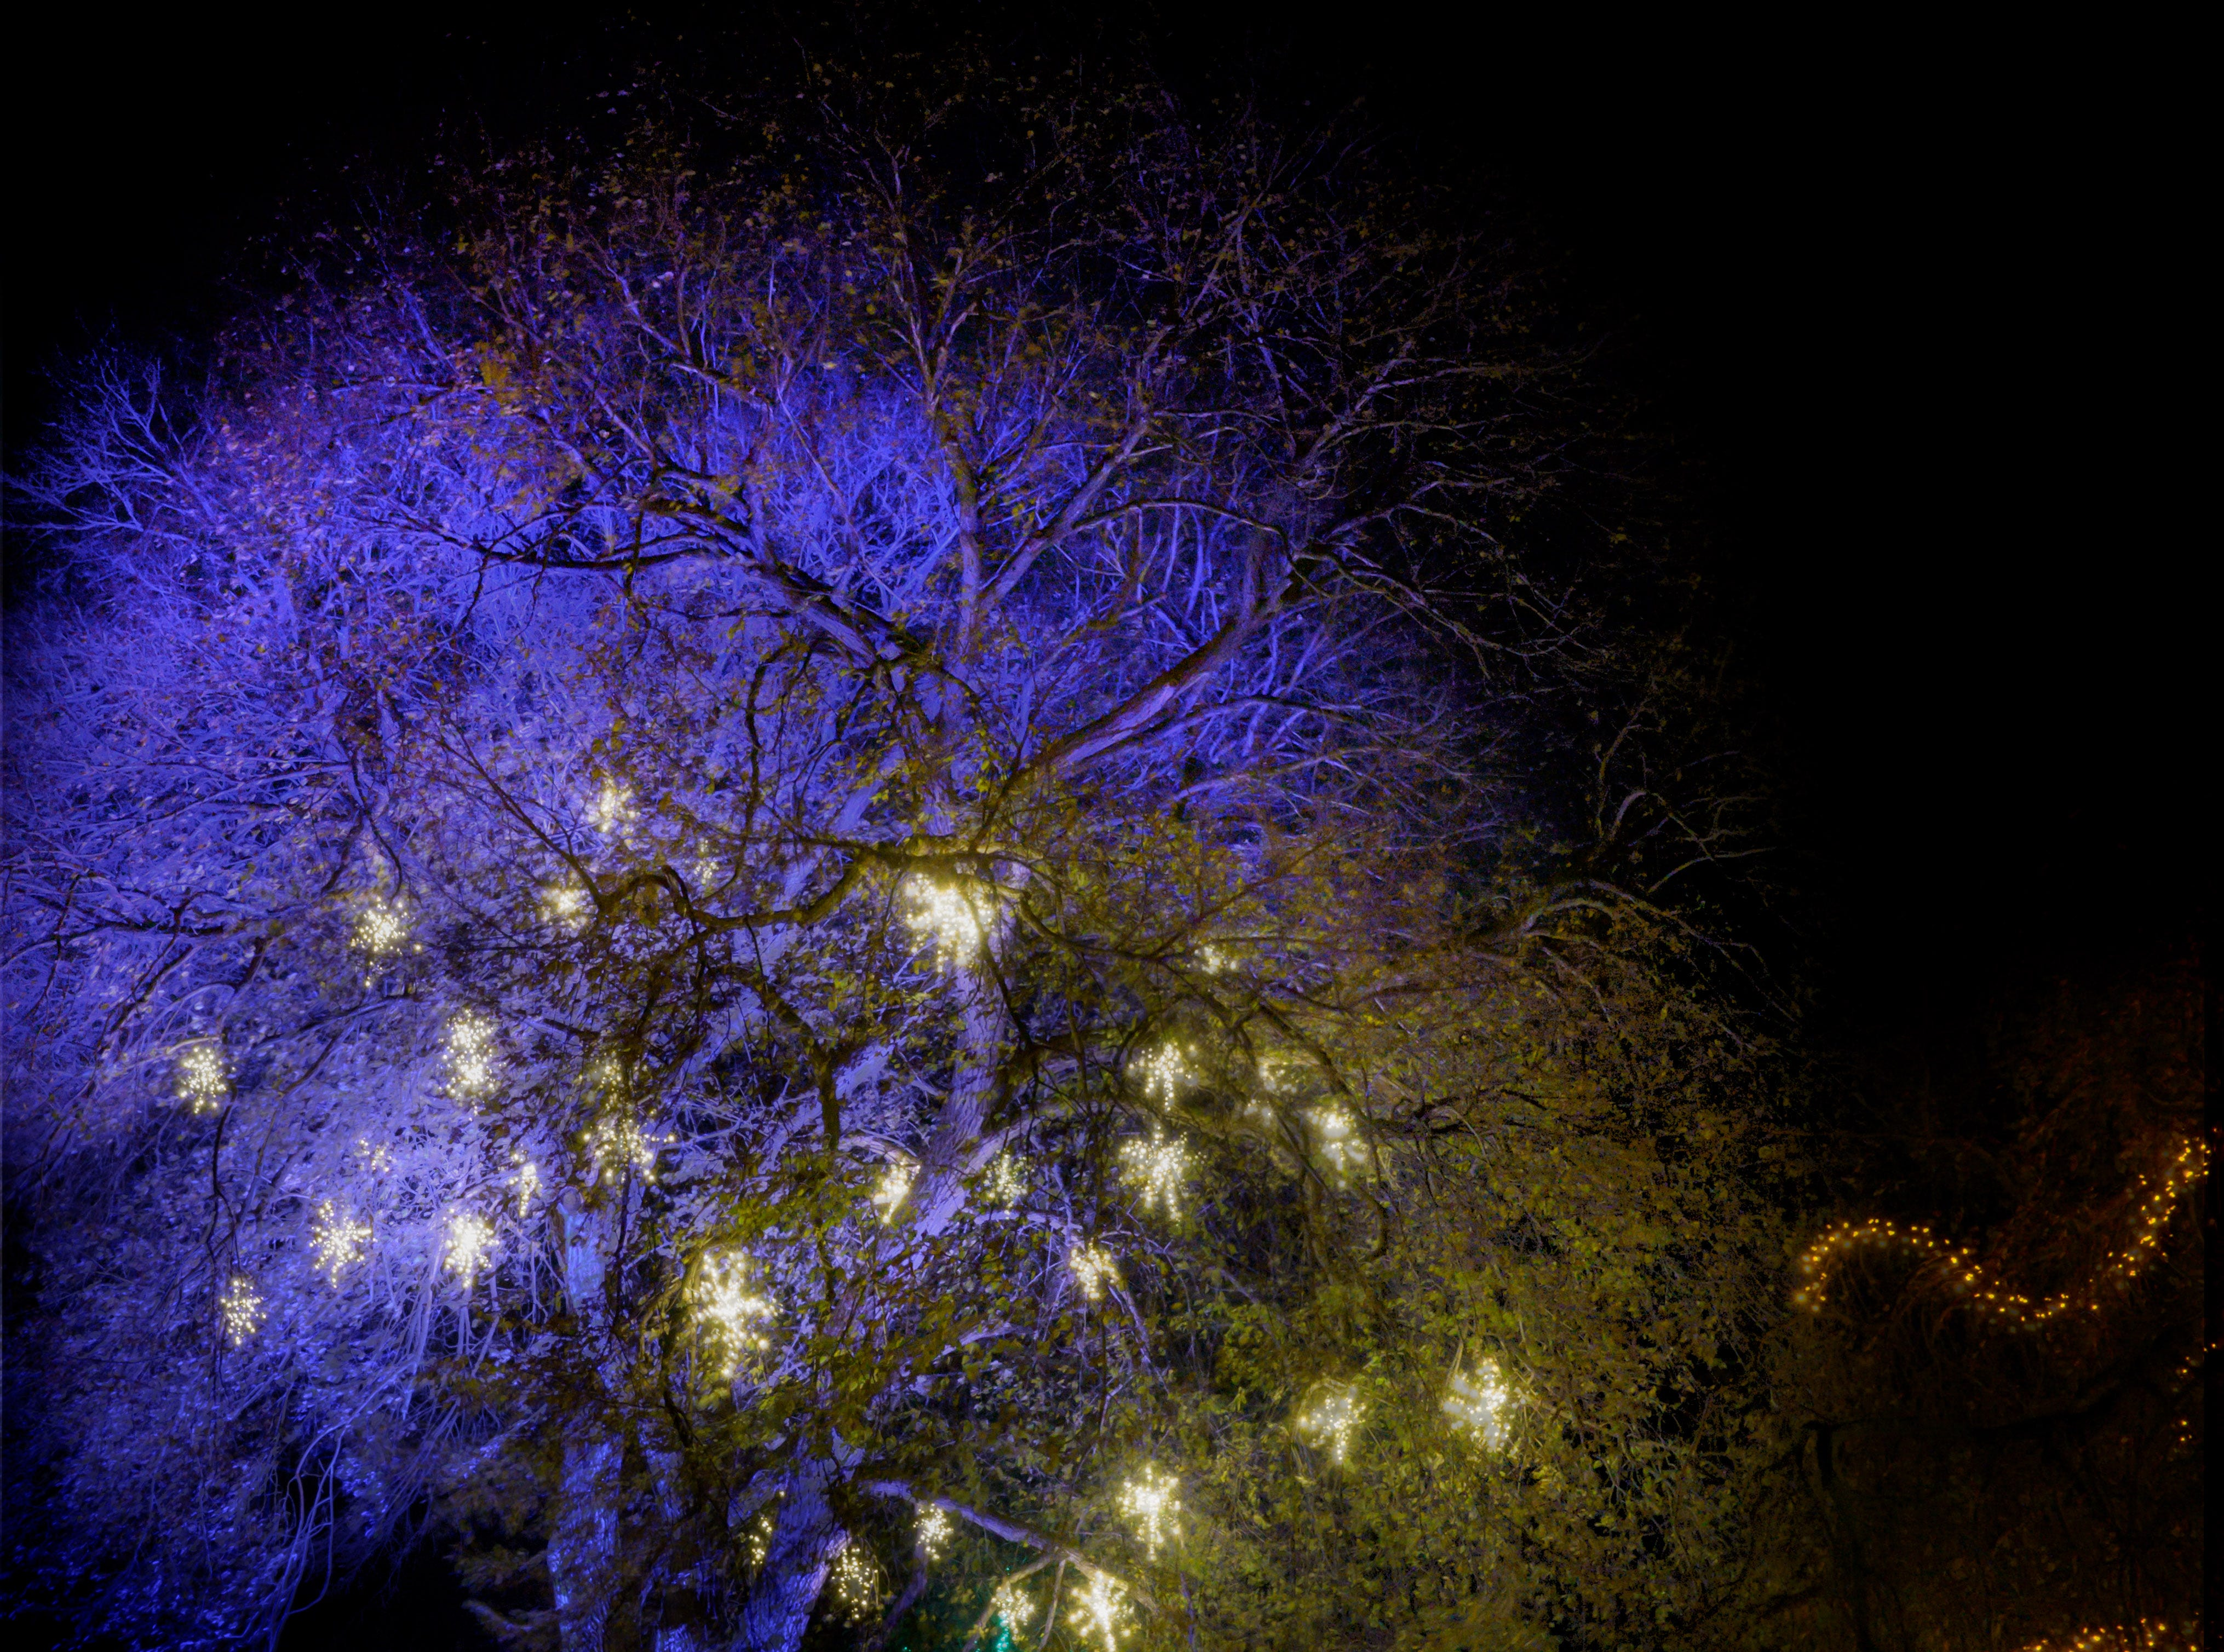 More than 500,000 lights on 150 trees add glitter to the grounds during A Longwood Christmas in 2018.